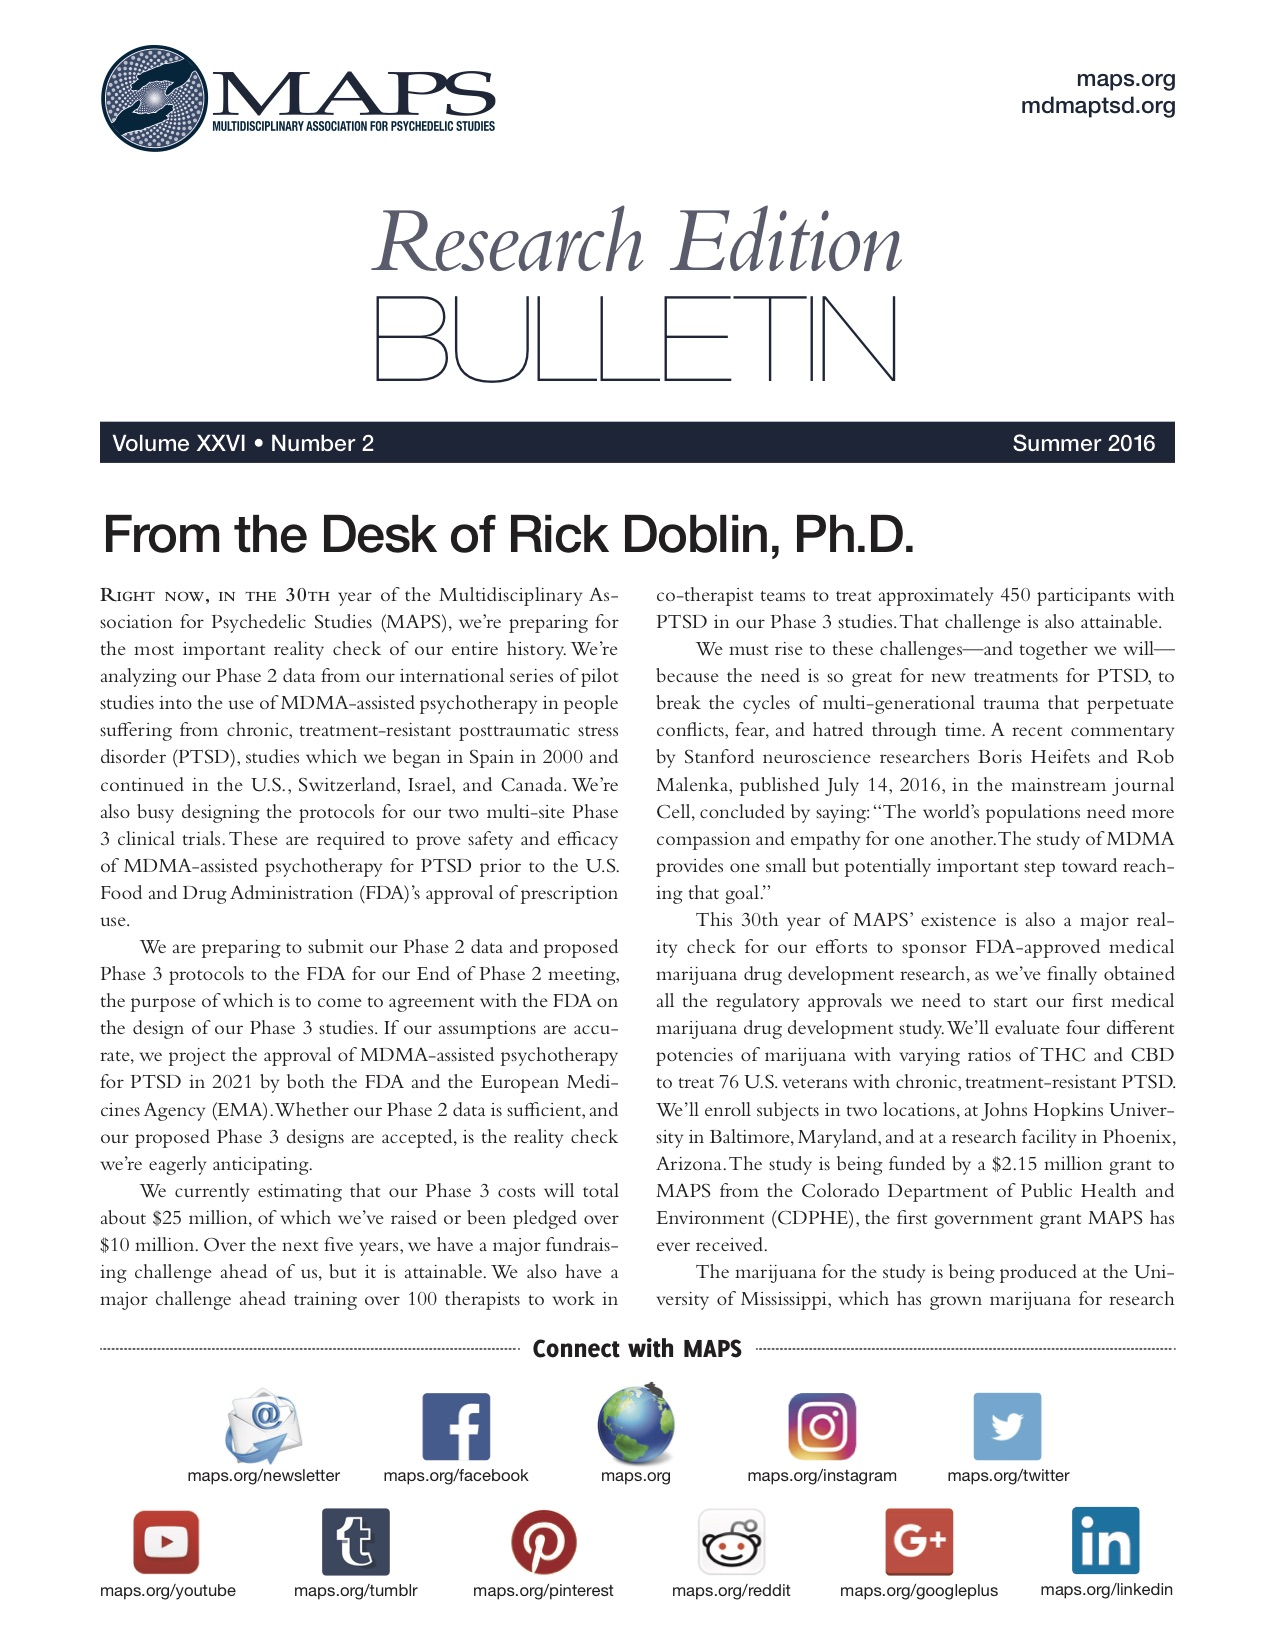 Summer 2016: Vol. 26, No. 2 Research Edition